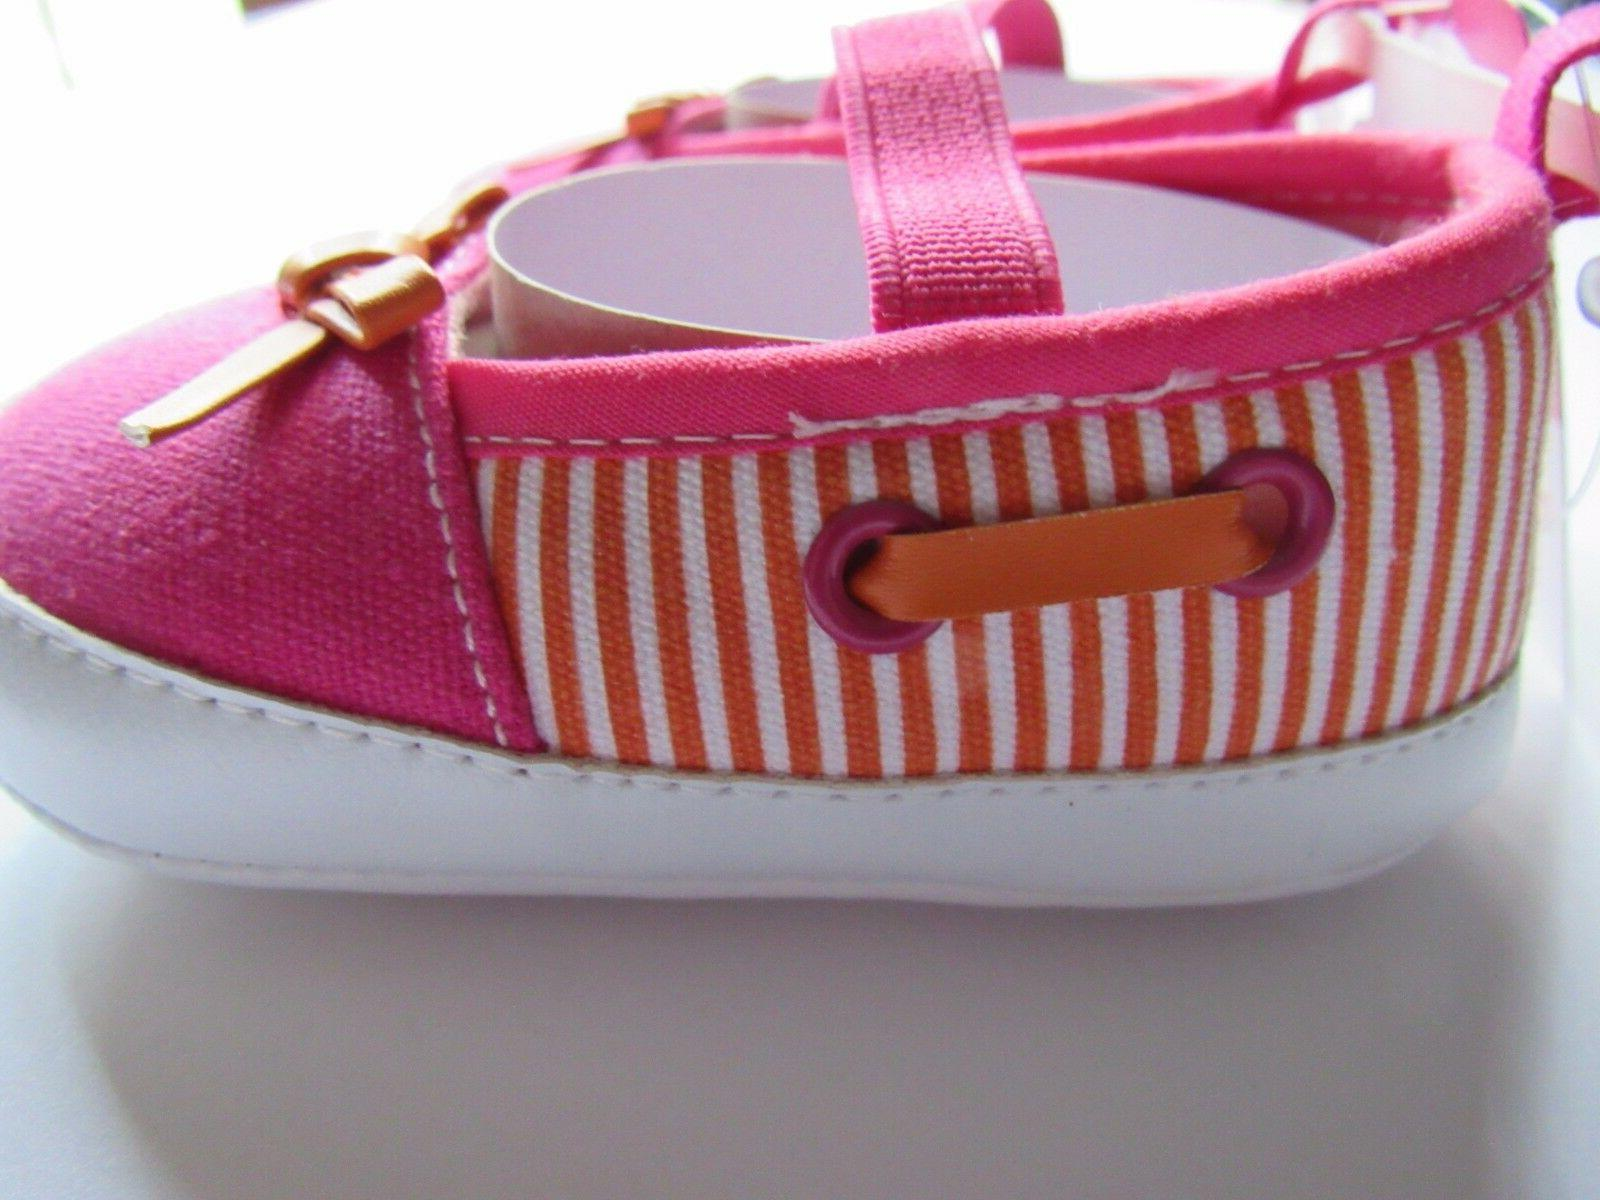 Luvable Slip-On Baby Pink Orange Striped Shoe